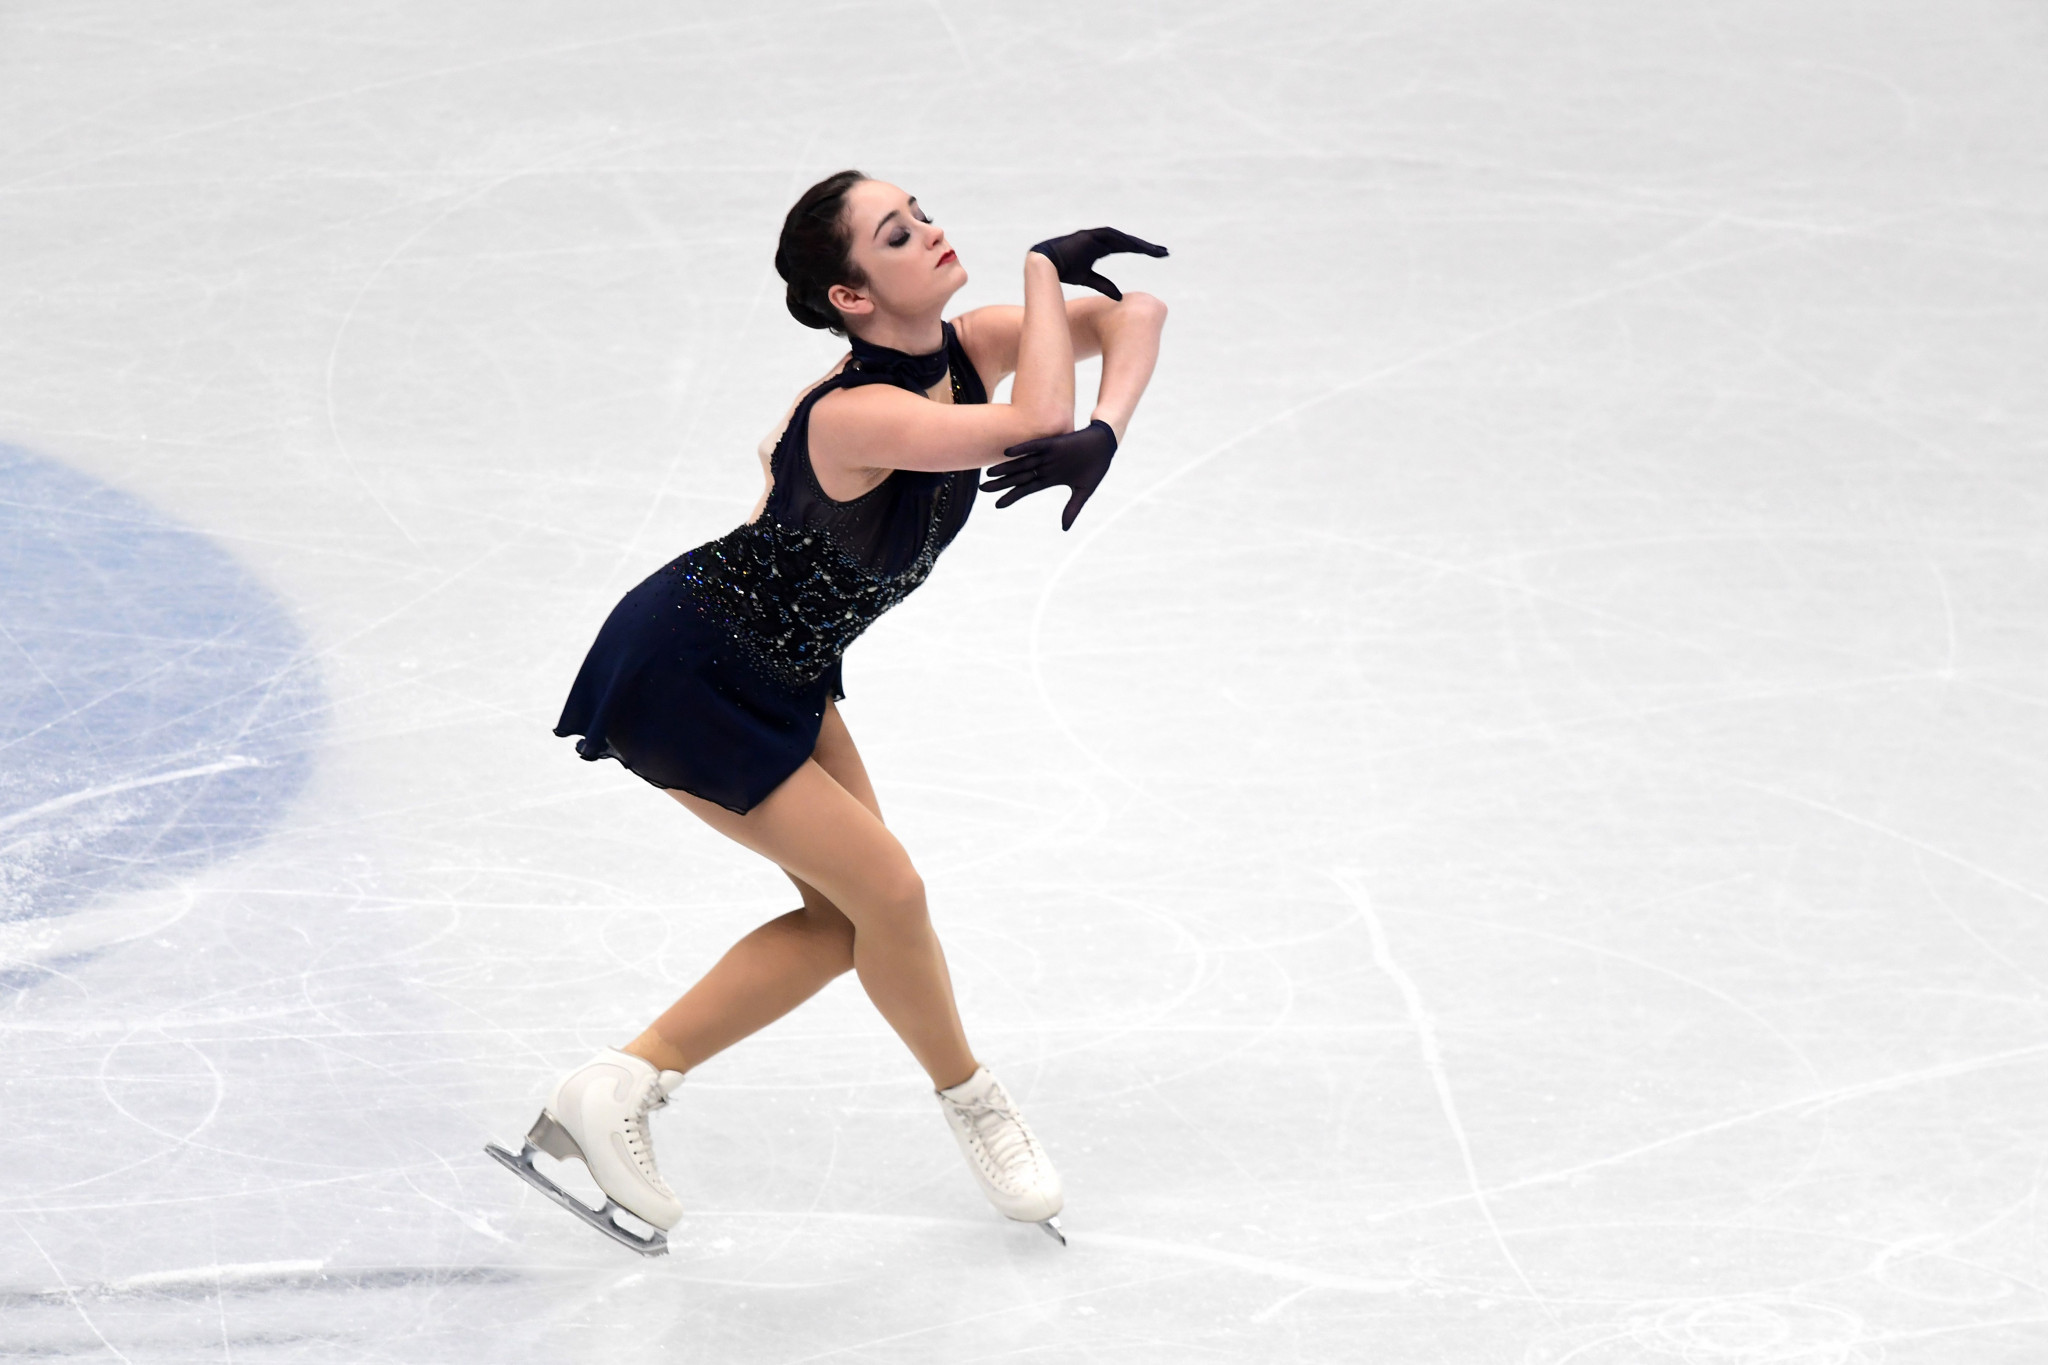 Figure skating Olympic and world champion Osmond announces retirement